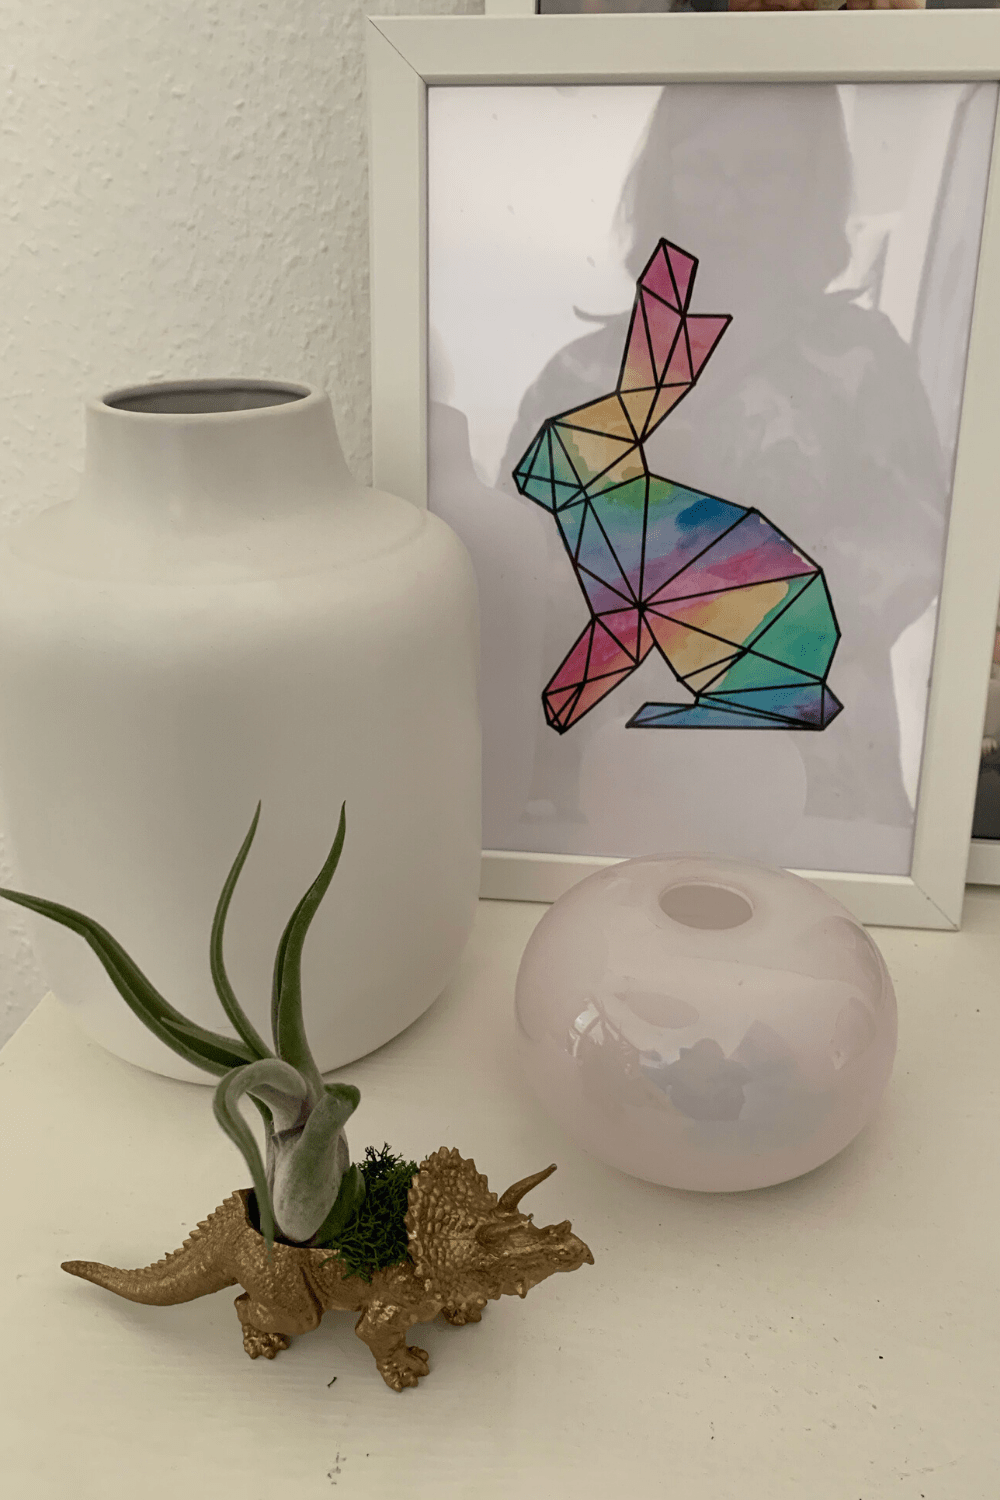 Scandi-inspired Easter decor: bunny form graphic watercolour art to decorate our house for Easter